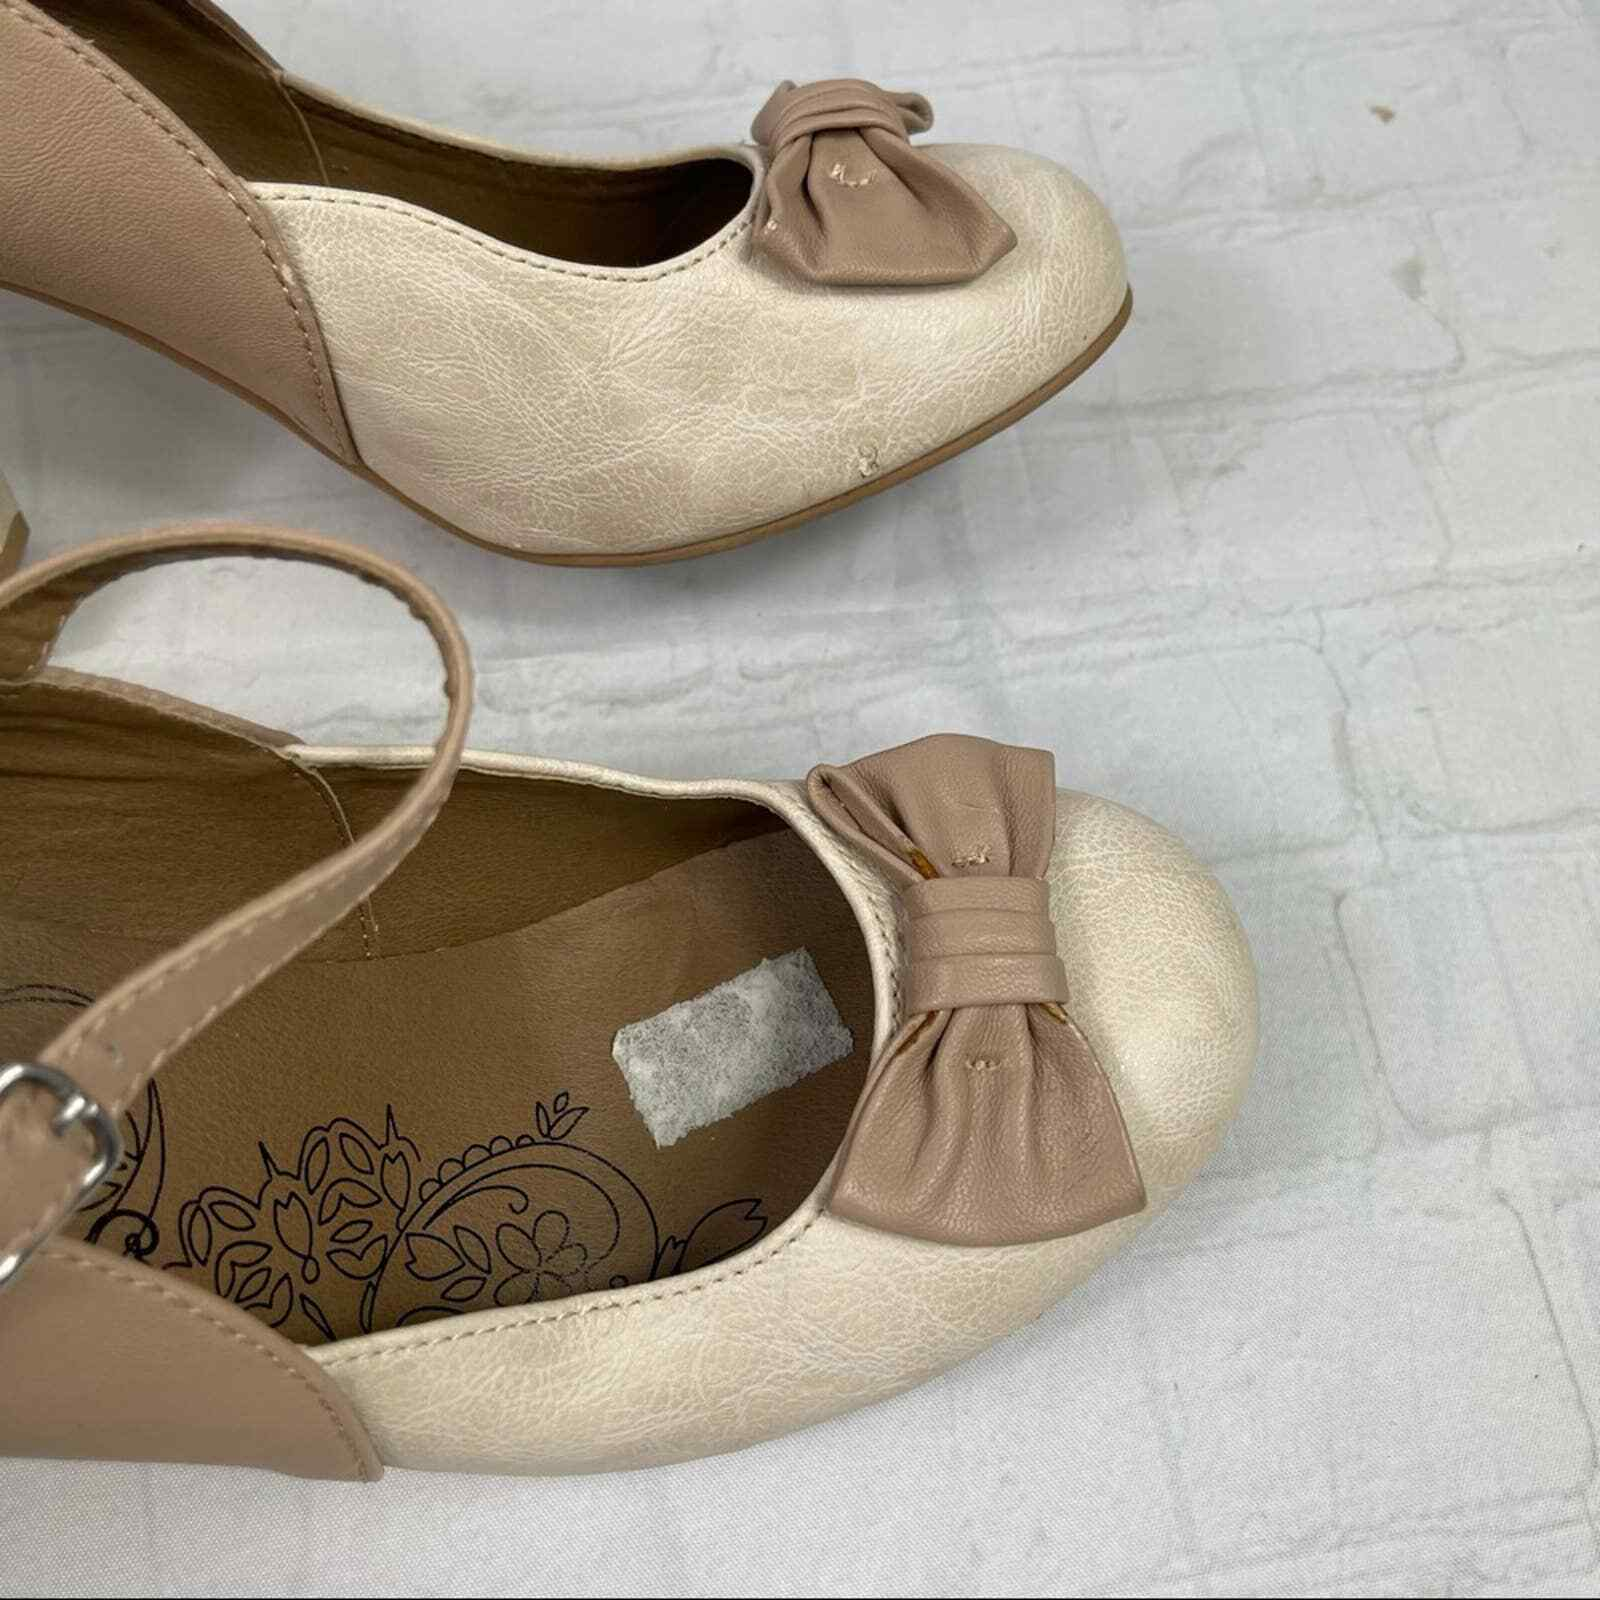 Jelly pop nude bow Mary Jane pumps - image 7